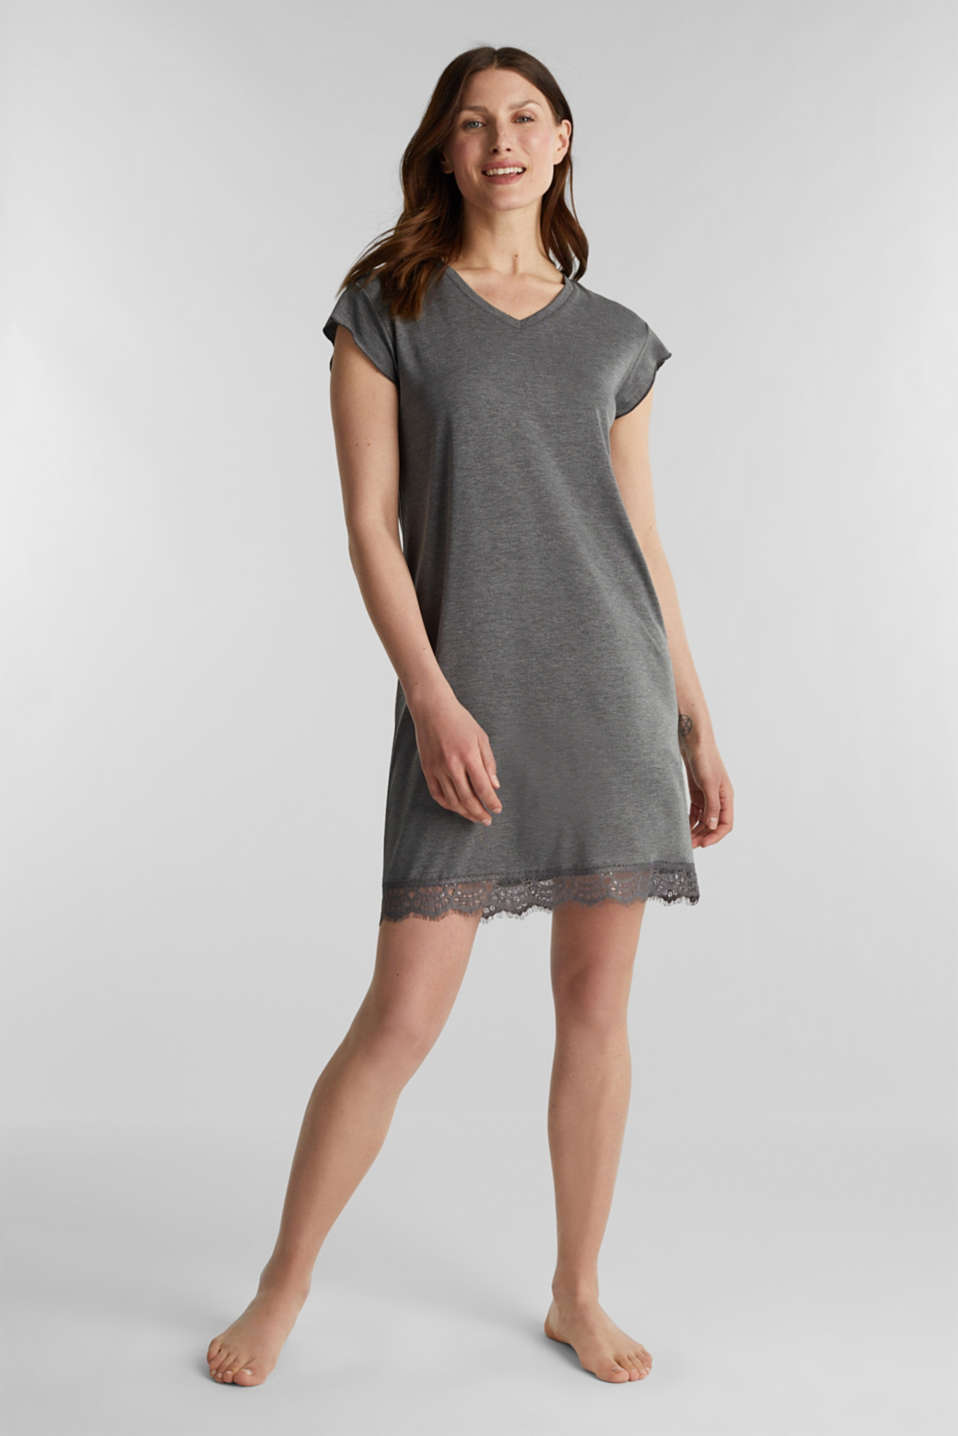 Esprit - Stretch jersey nightshirt with lace